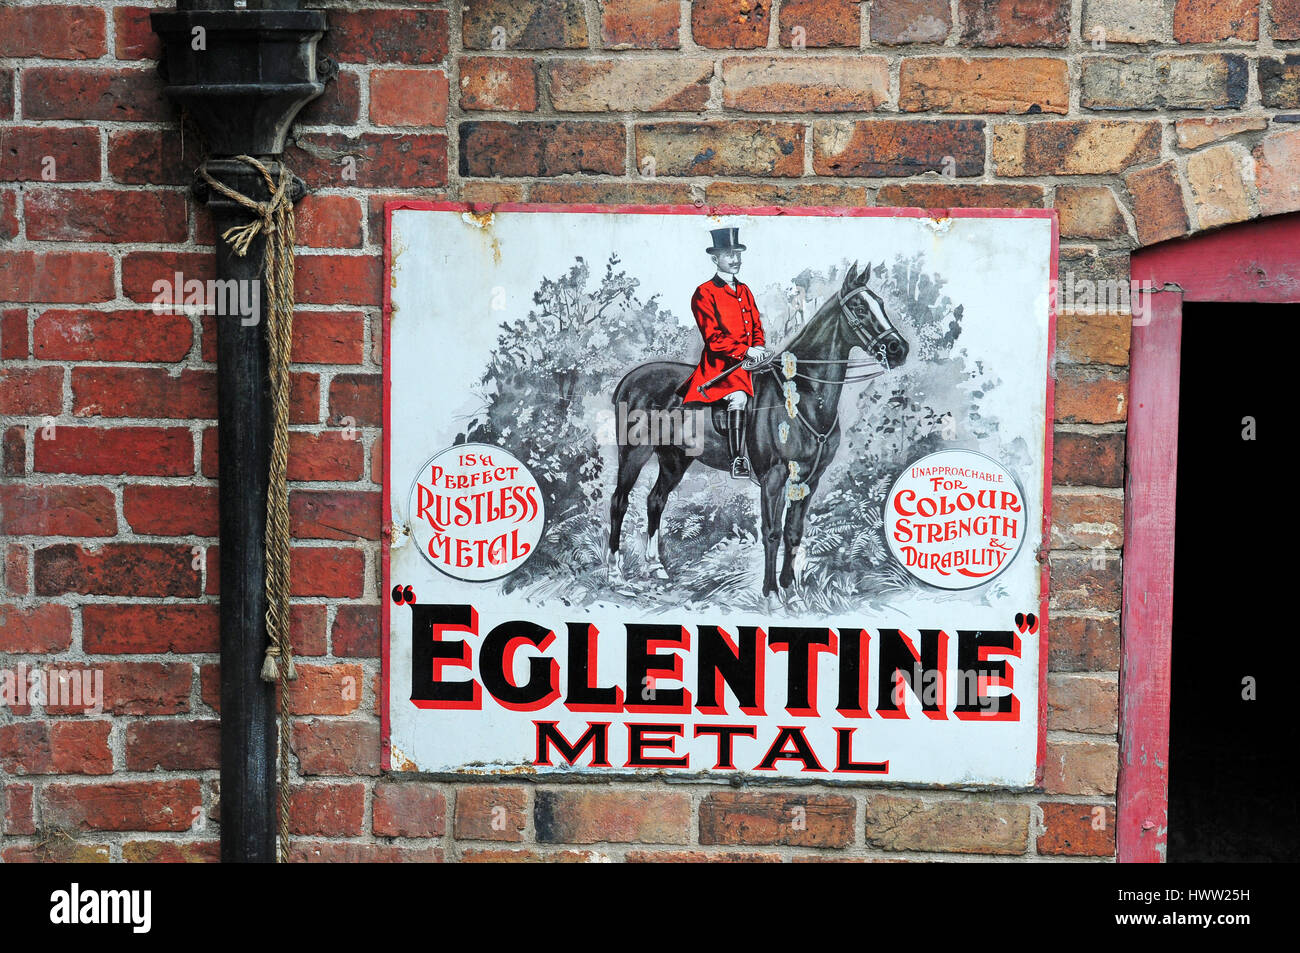 Enamelled metal advertisement on a brick wall.  Blists Hill victorian Village. Coalbrookdale - Stock Image